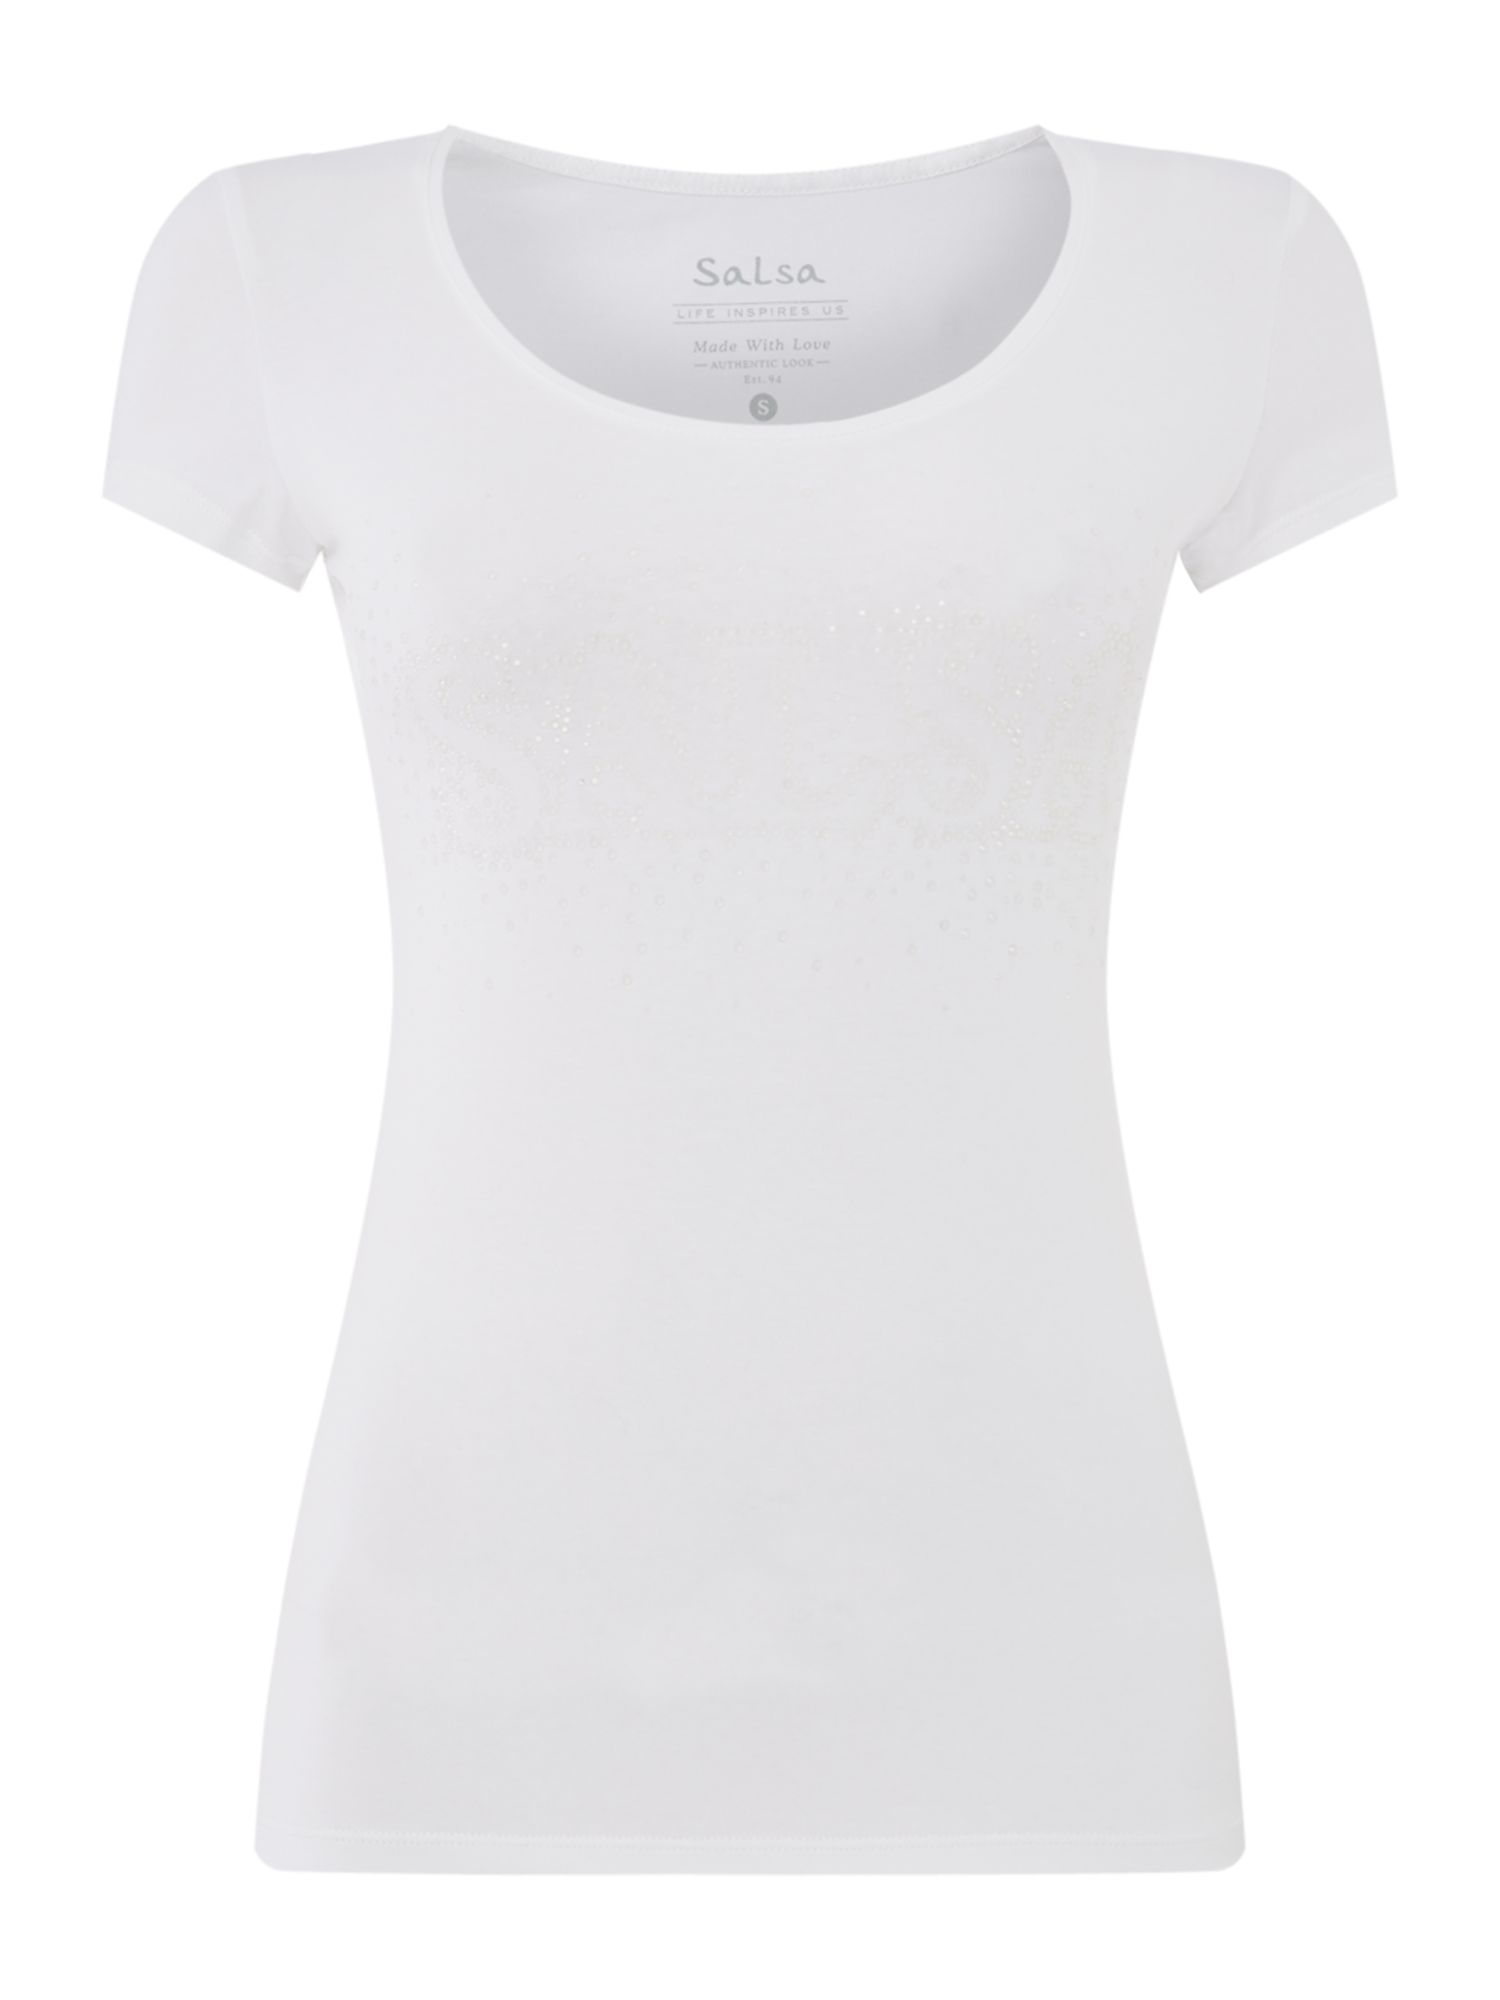 Salsa Short sleeve embellished logo tshirt, White